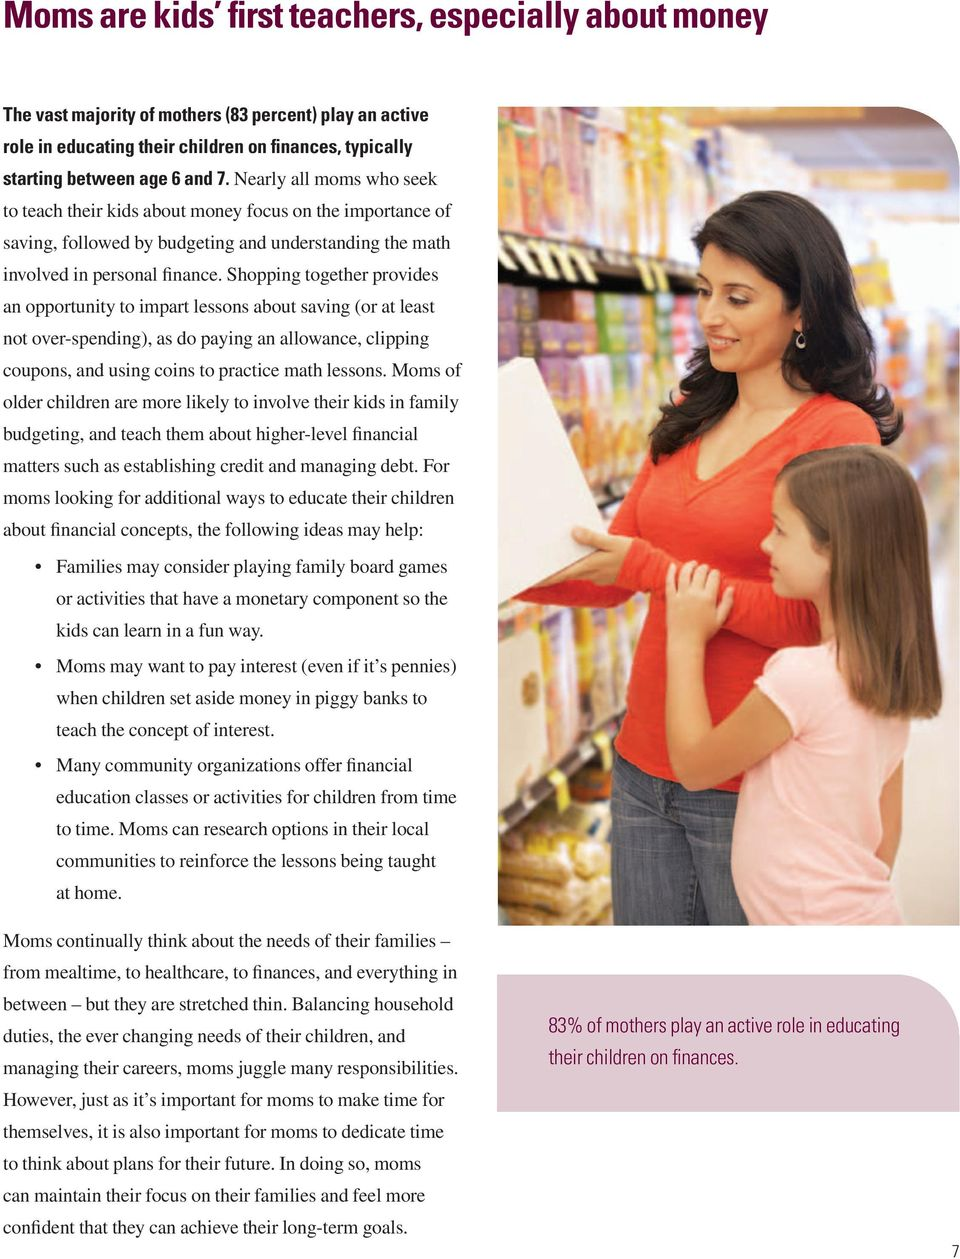 Shopping together provides an opportunity to impart lessons about saving (or at least not over-spending), as do paying an allowance, clipping coupons, and using coins to practice math lessons.